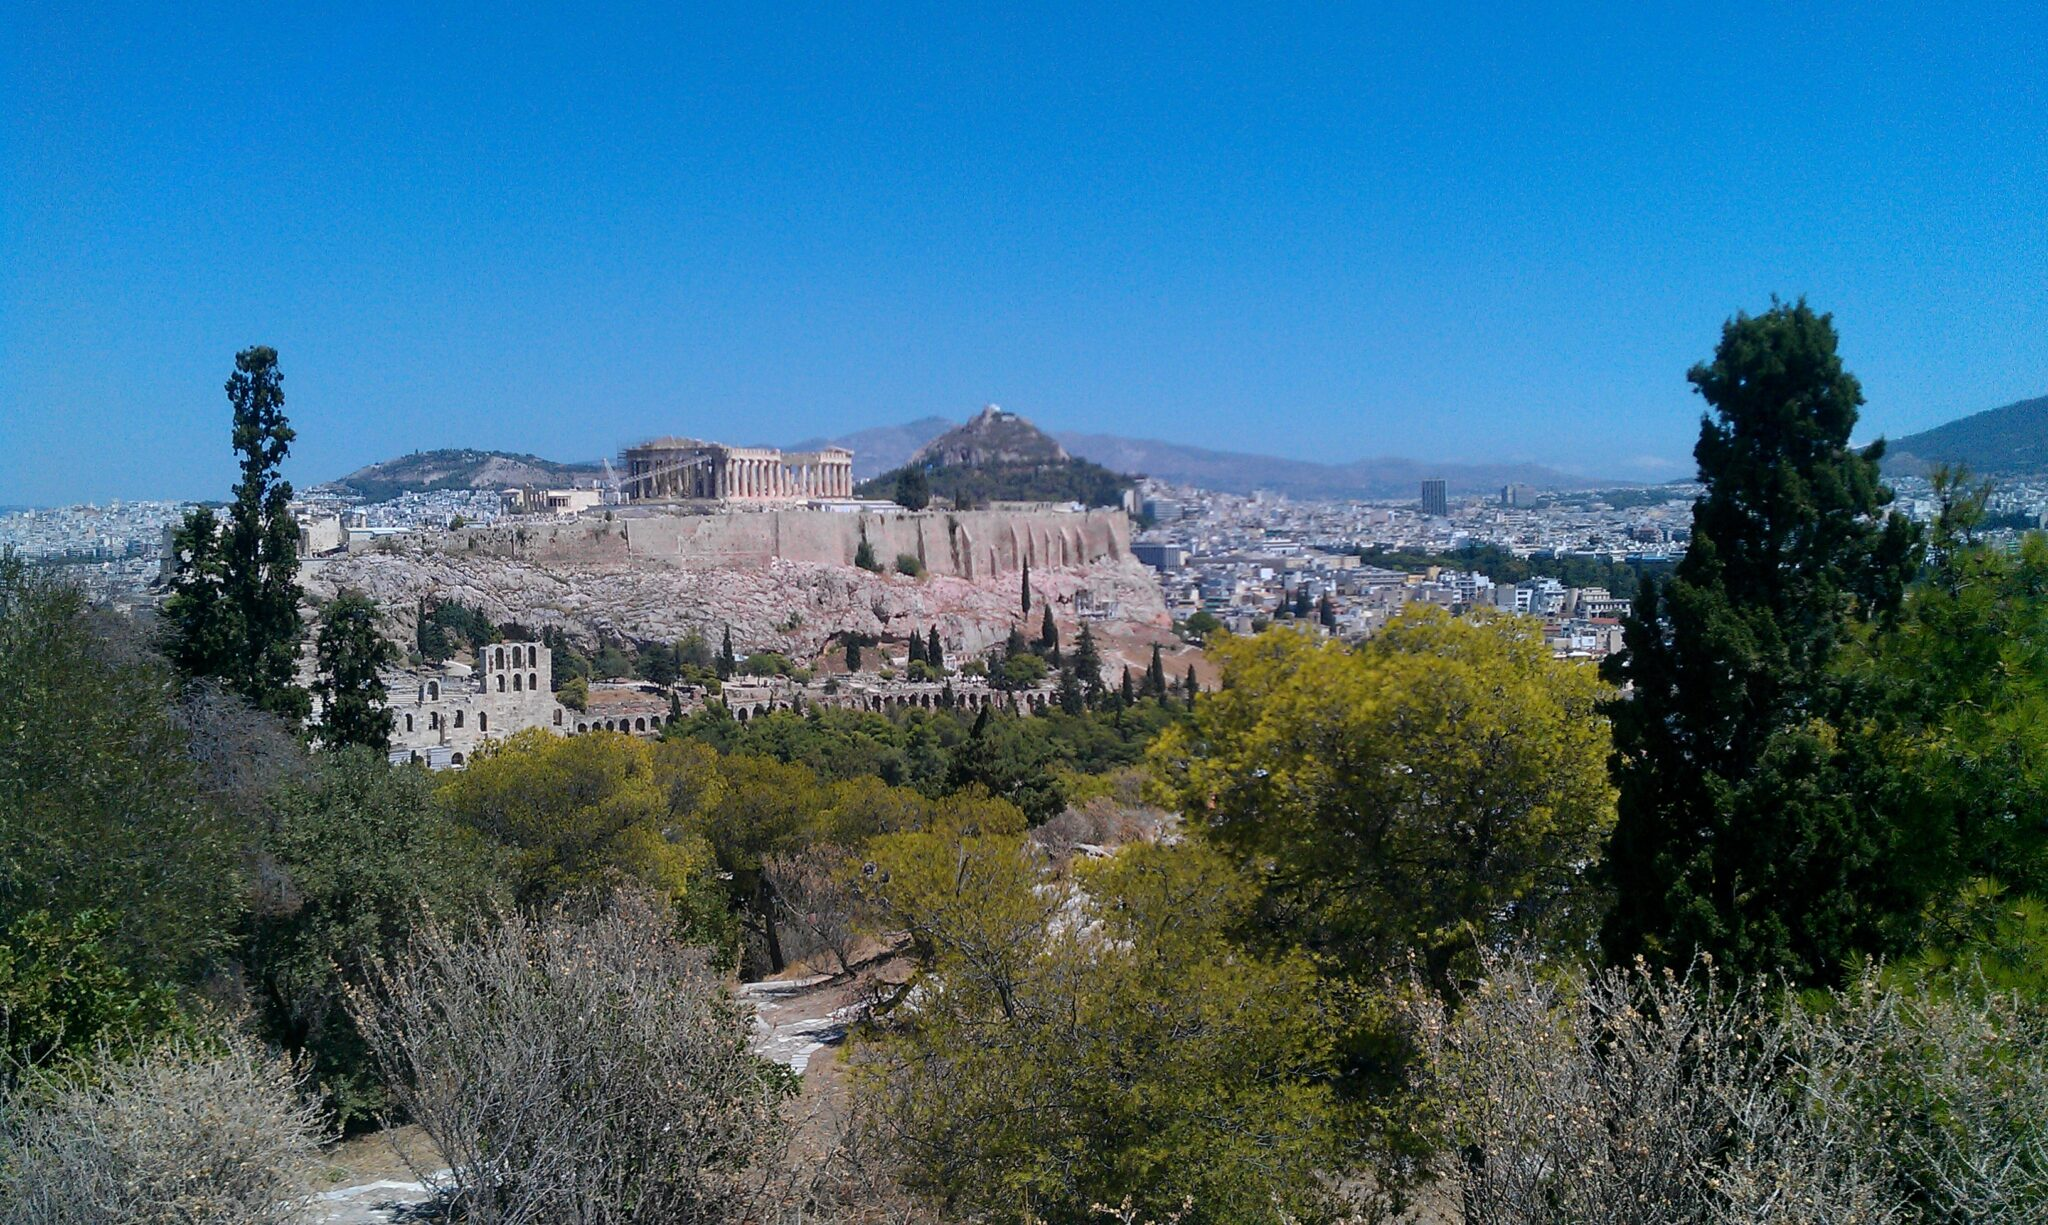 The Acropolis and Athens